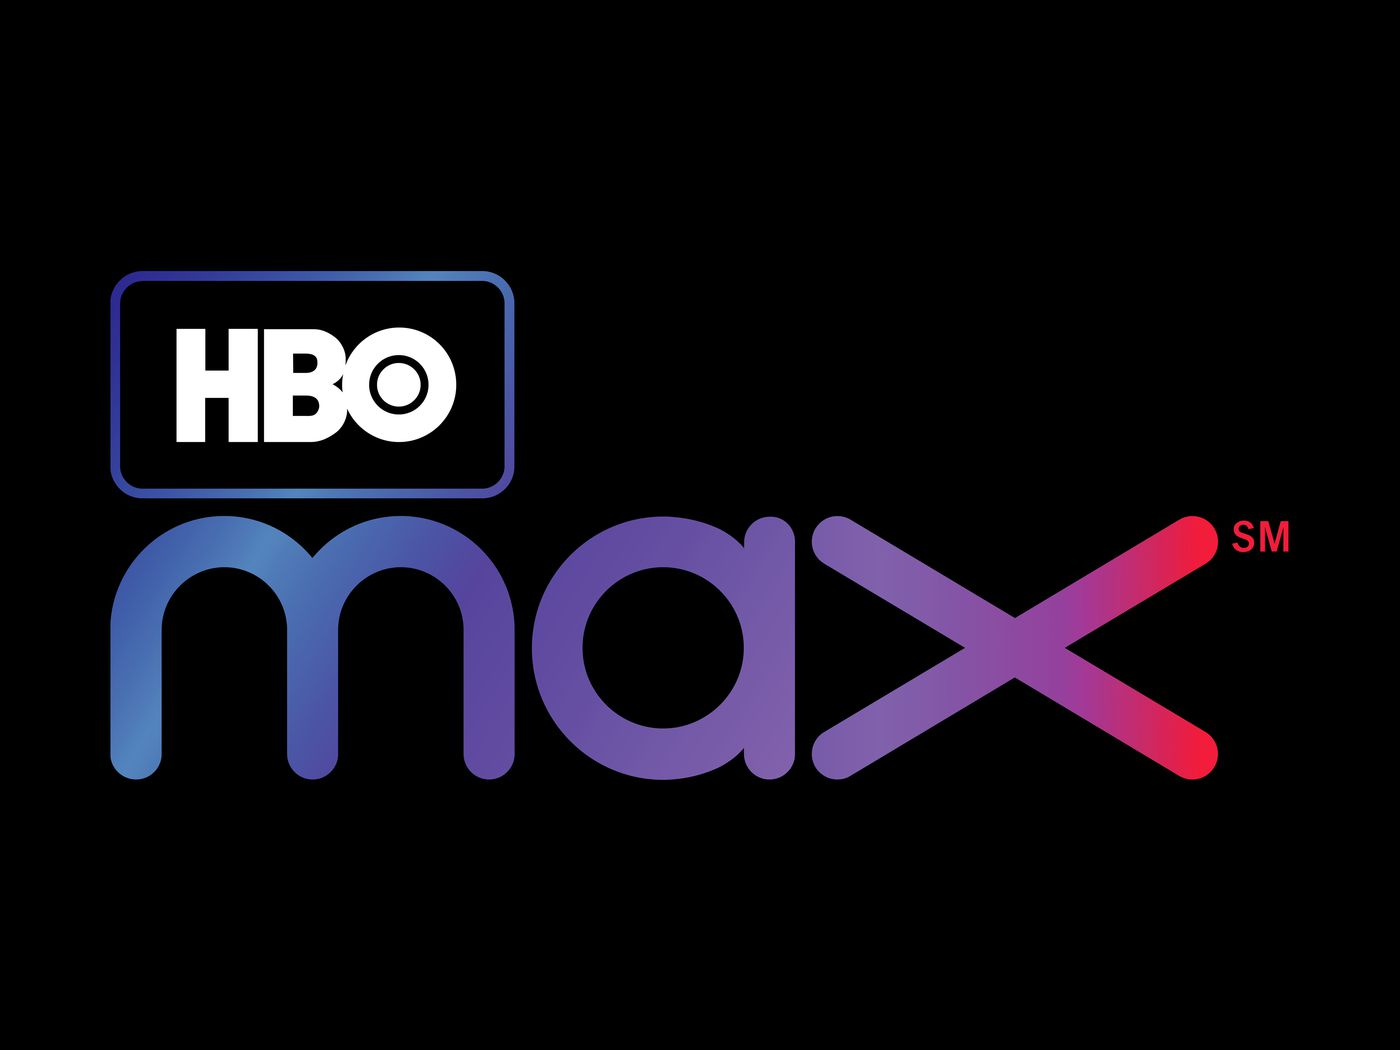 WarnerMedia confirms its Netflix rival will be called HBO Max - The